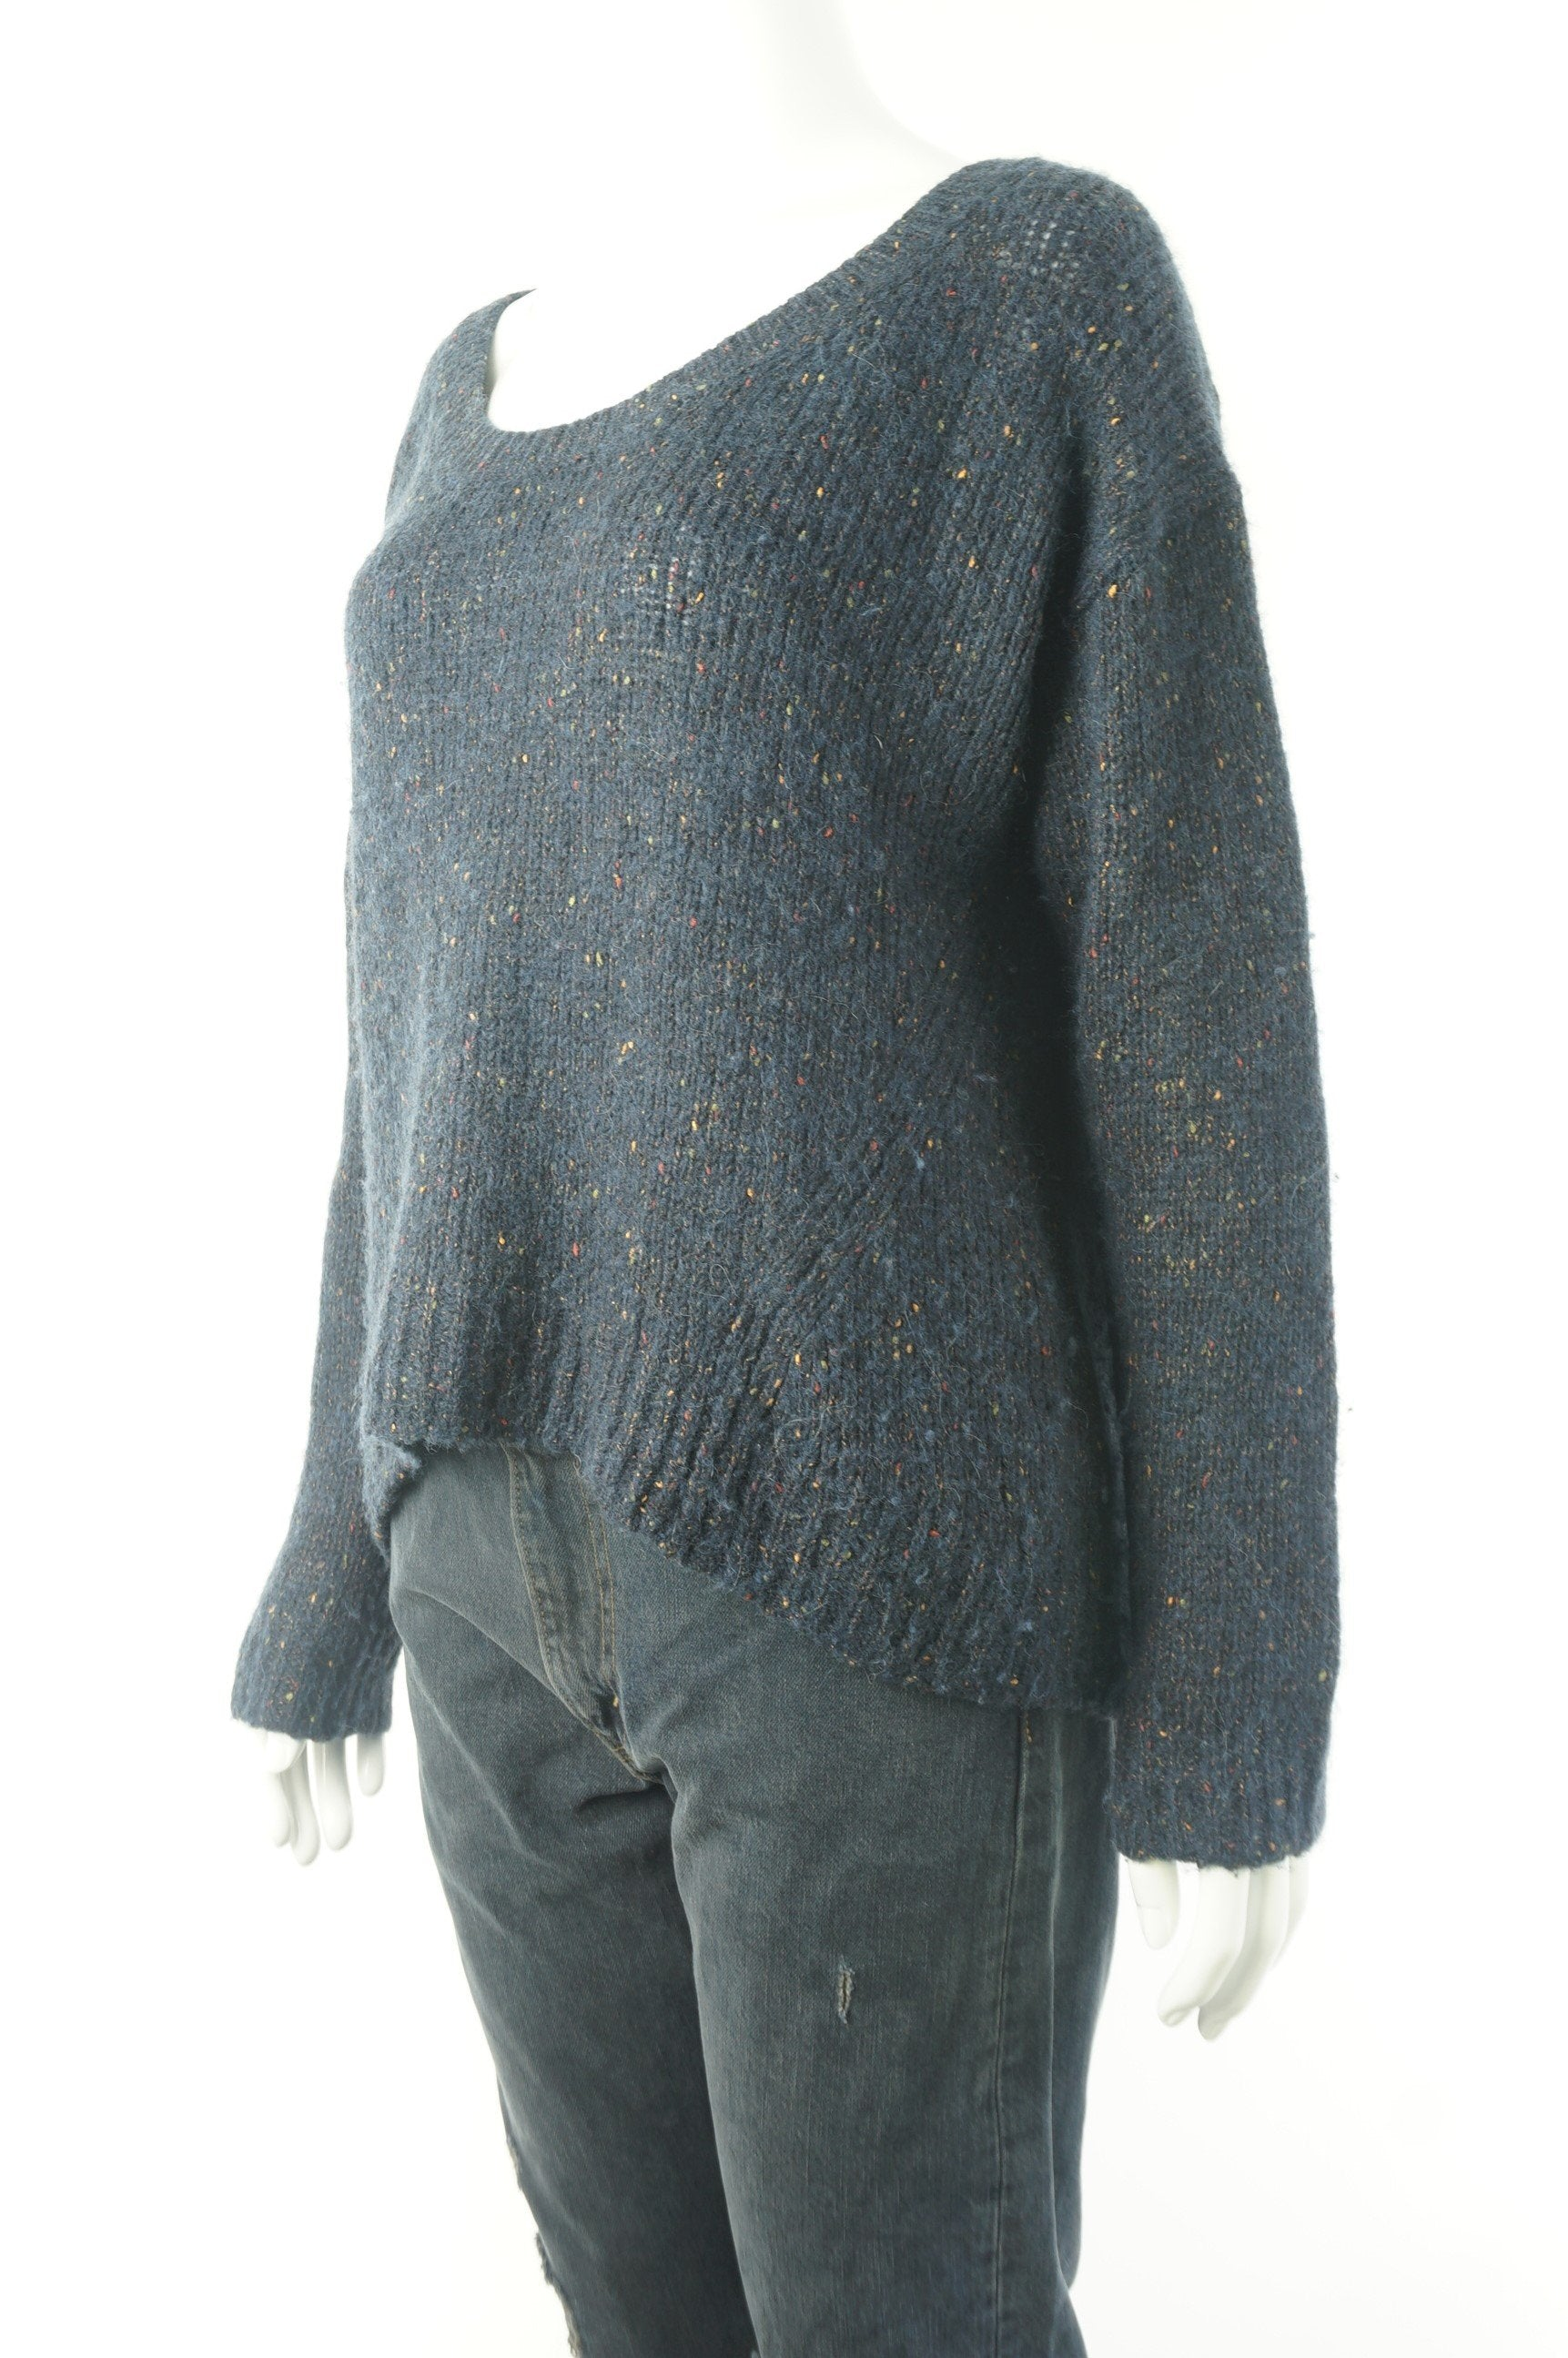 Babaton Oversized Sweater With Alpaca Wool, Relaxed and slouchy sweater made from alpaca blend. You next lazy Sunday outfit? Fits larger., Blue, 40% Alpaca, 32% Viscose, 20% Polymide, 8% wool, women's Tops, women's Blue Tops, Babaton women's Tops, aritzia babaton oversized sweater, aritzia women's sweater, aritzia wide-neck loose-fitting sweater,